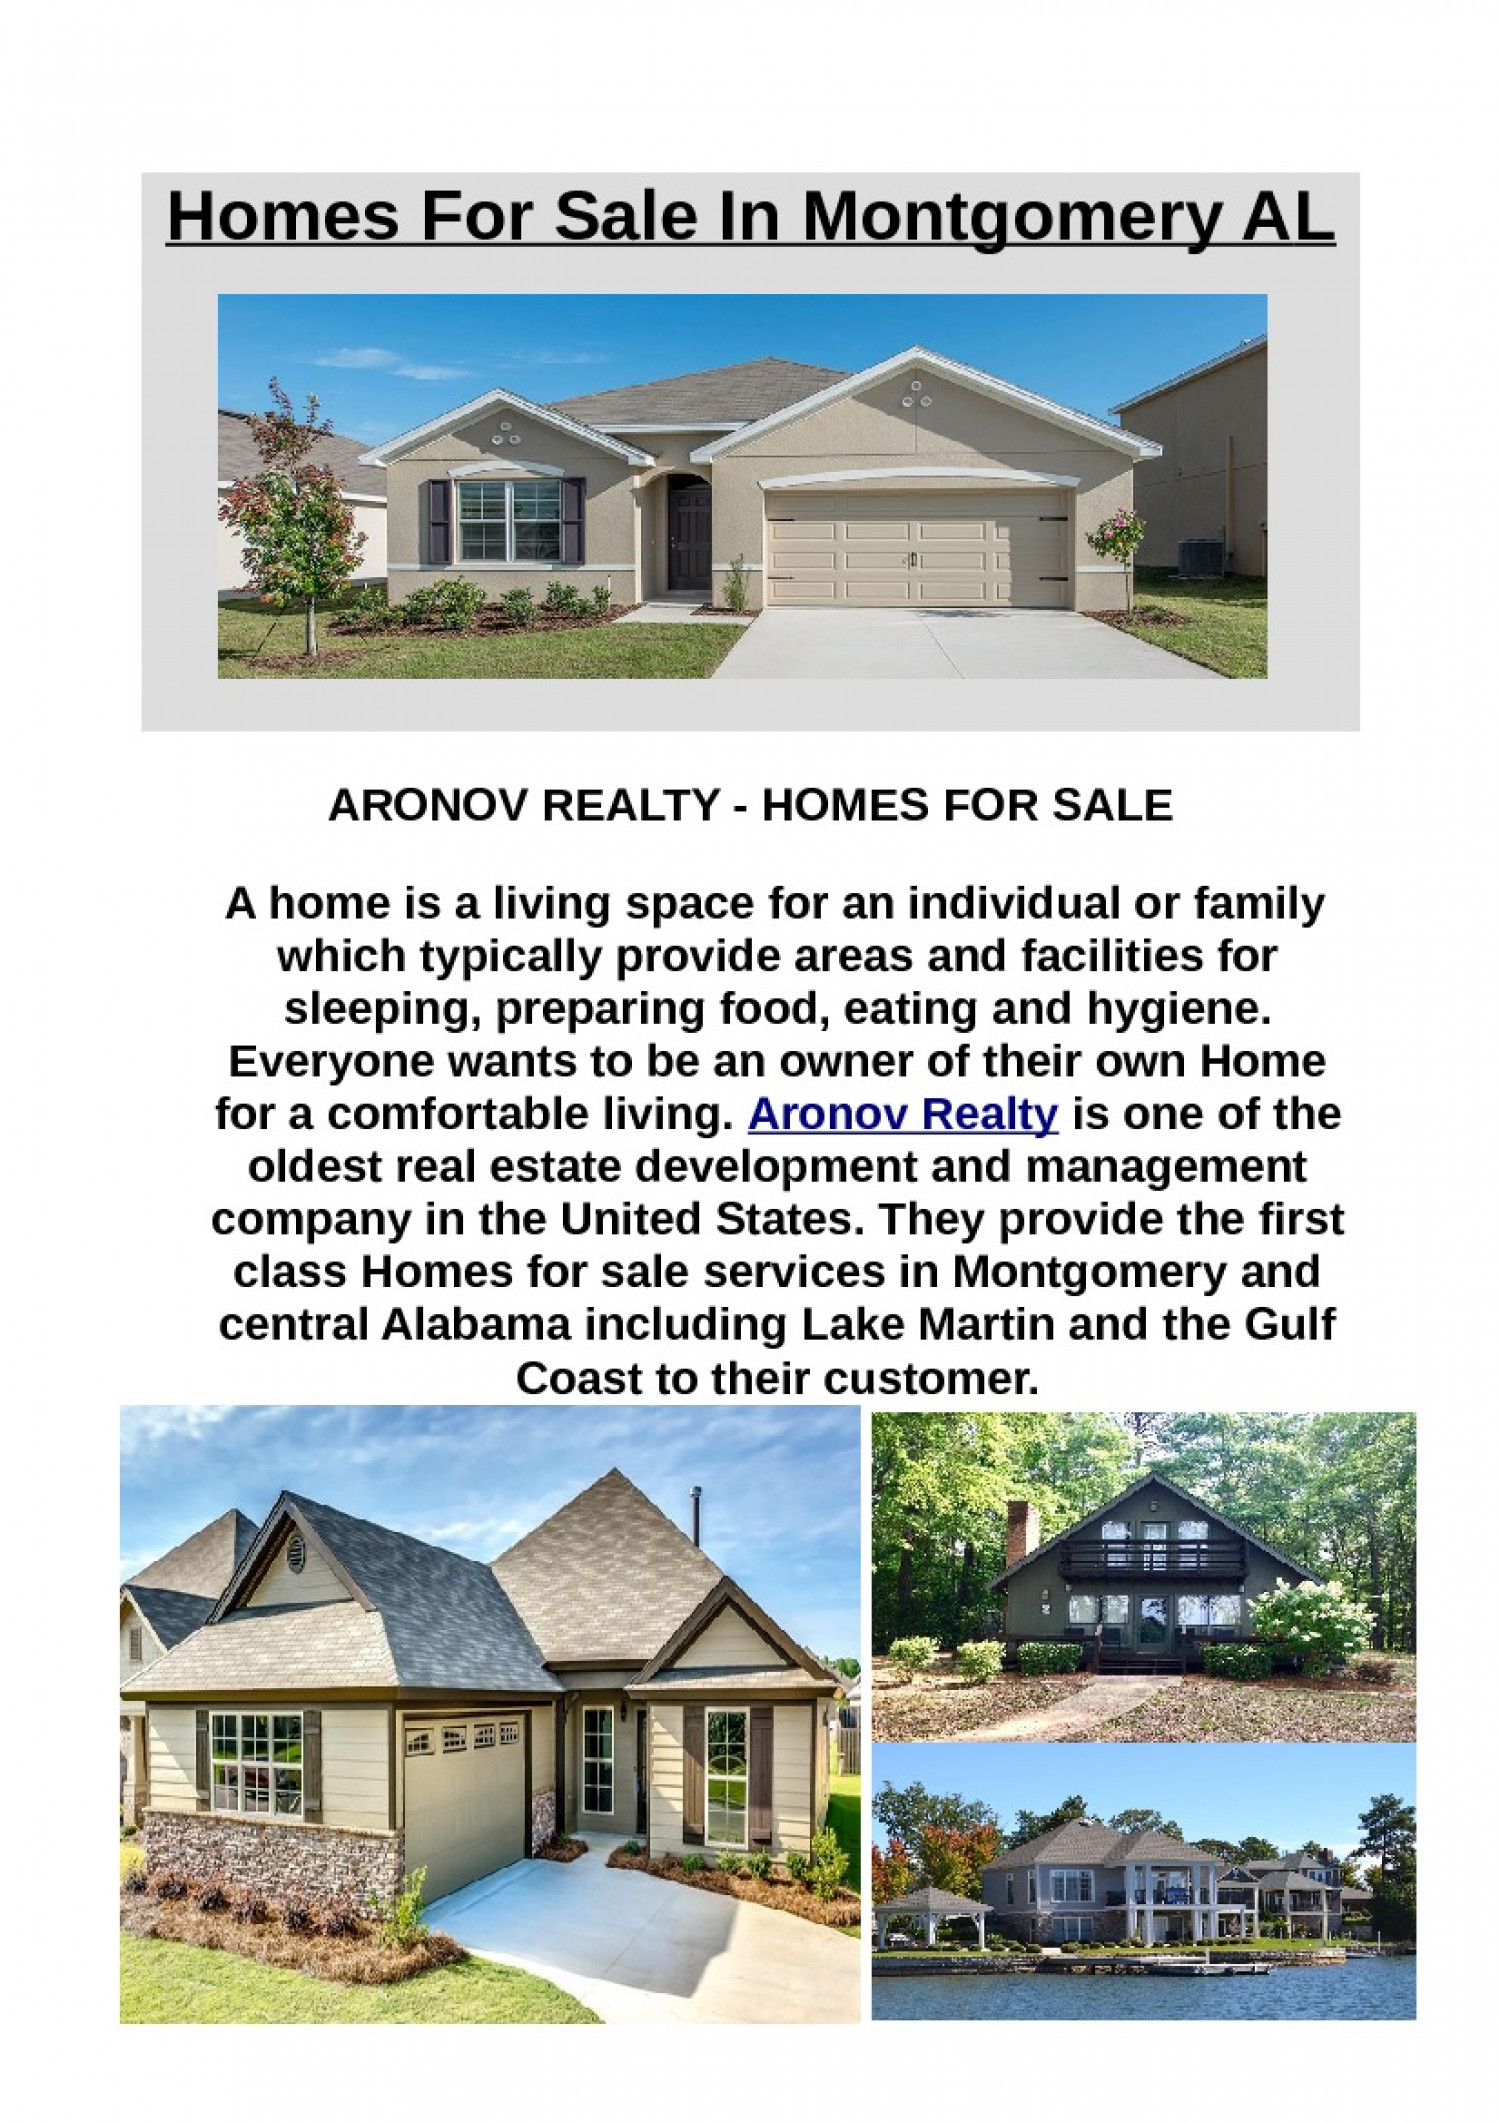 Find Homes For Sale In Montgomery AL Infographic